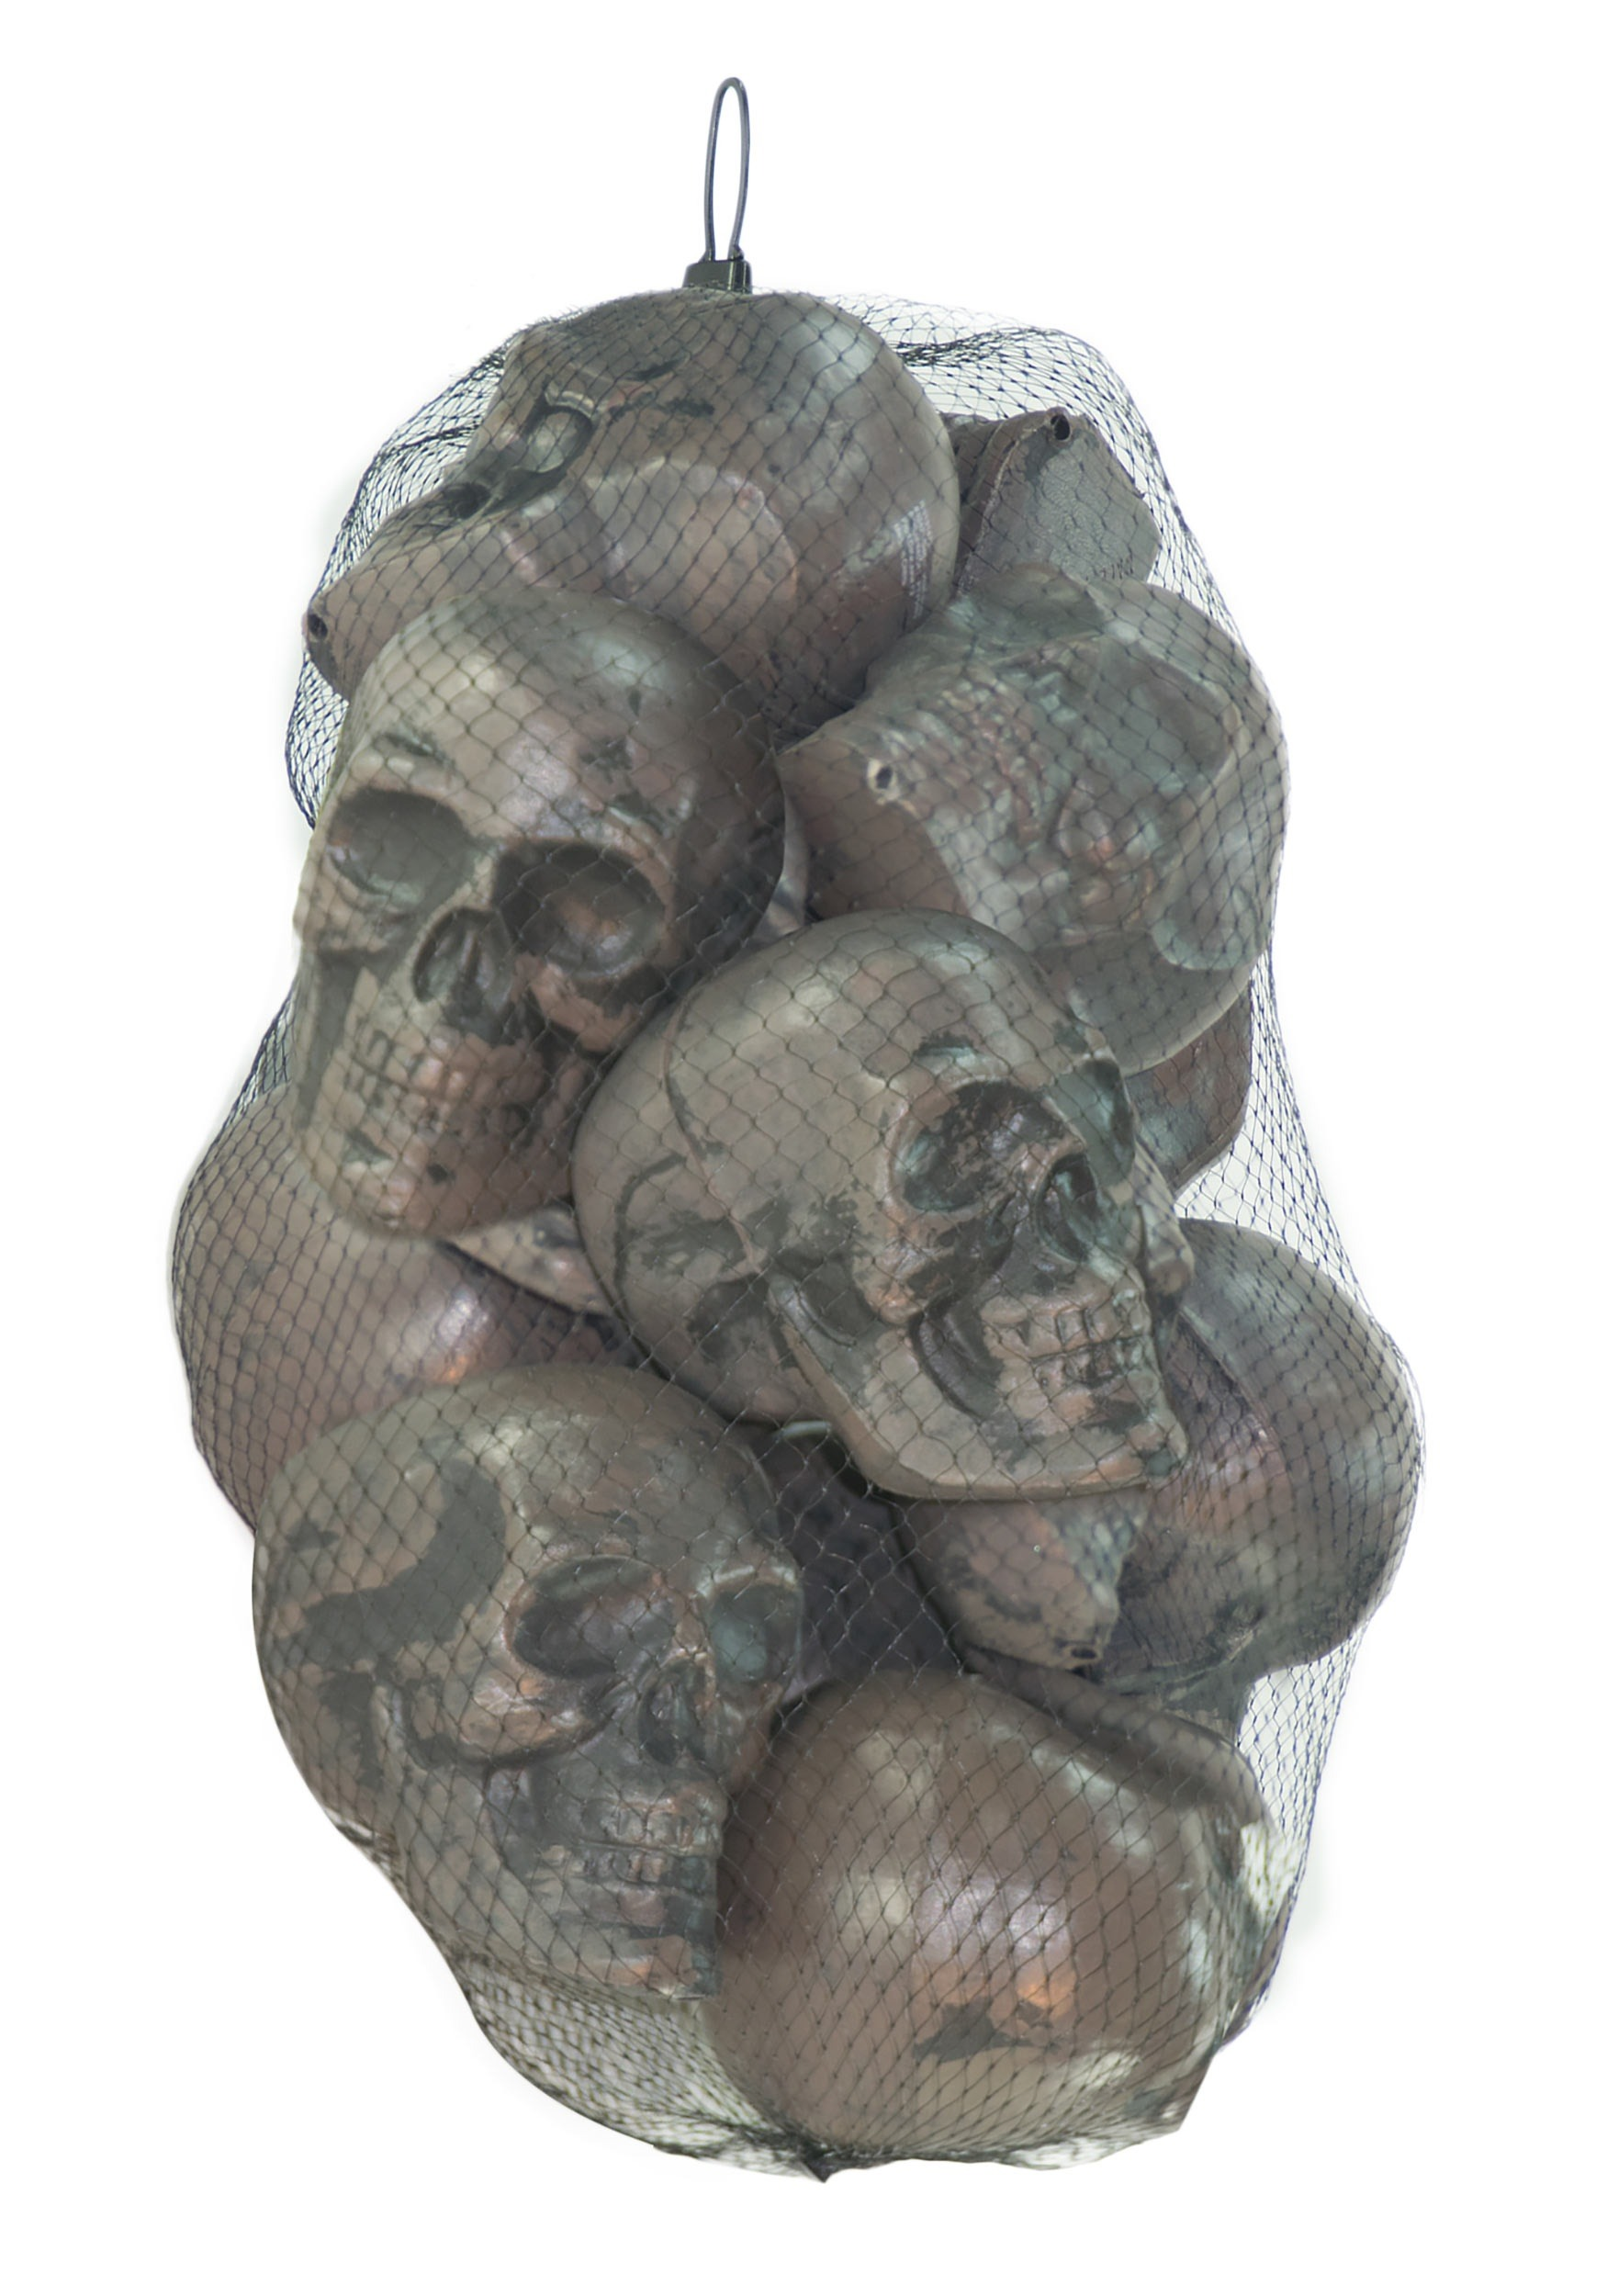 12 pc. Bag of Skulls